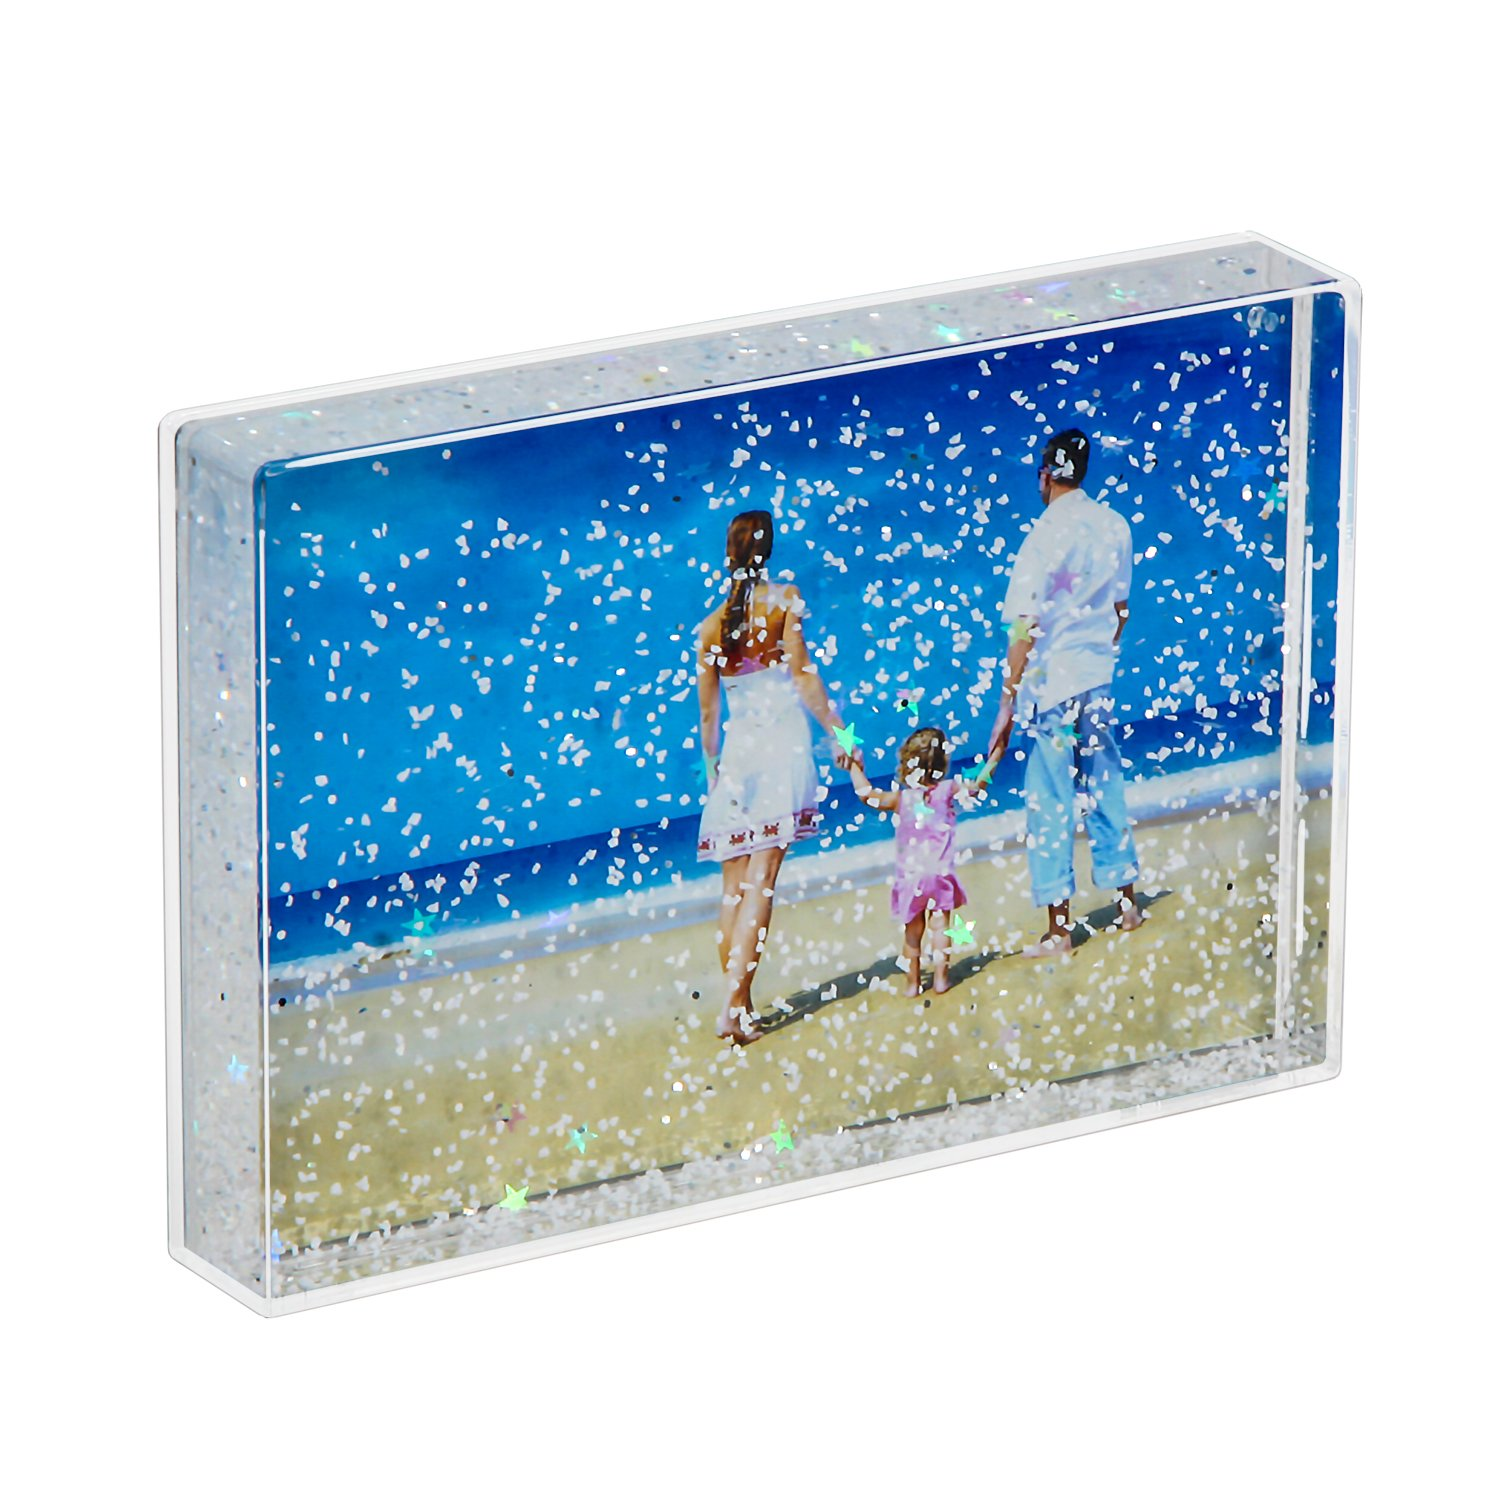 NIUBEE 4x6 Glitter Liquid Photo Frame for Gifts, Clear Plastic Acrylic Floating Sparkle Water Picture Frame(Snow) by NIUBEE